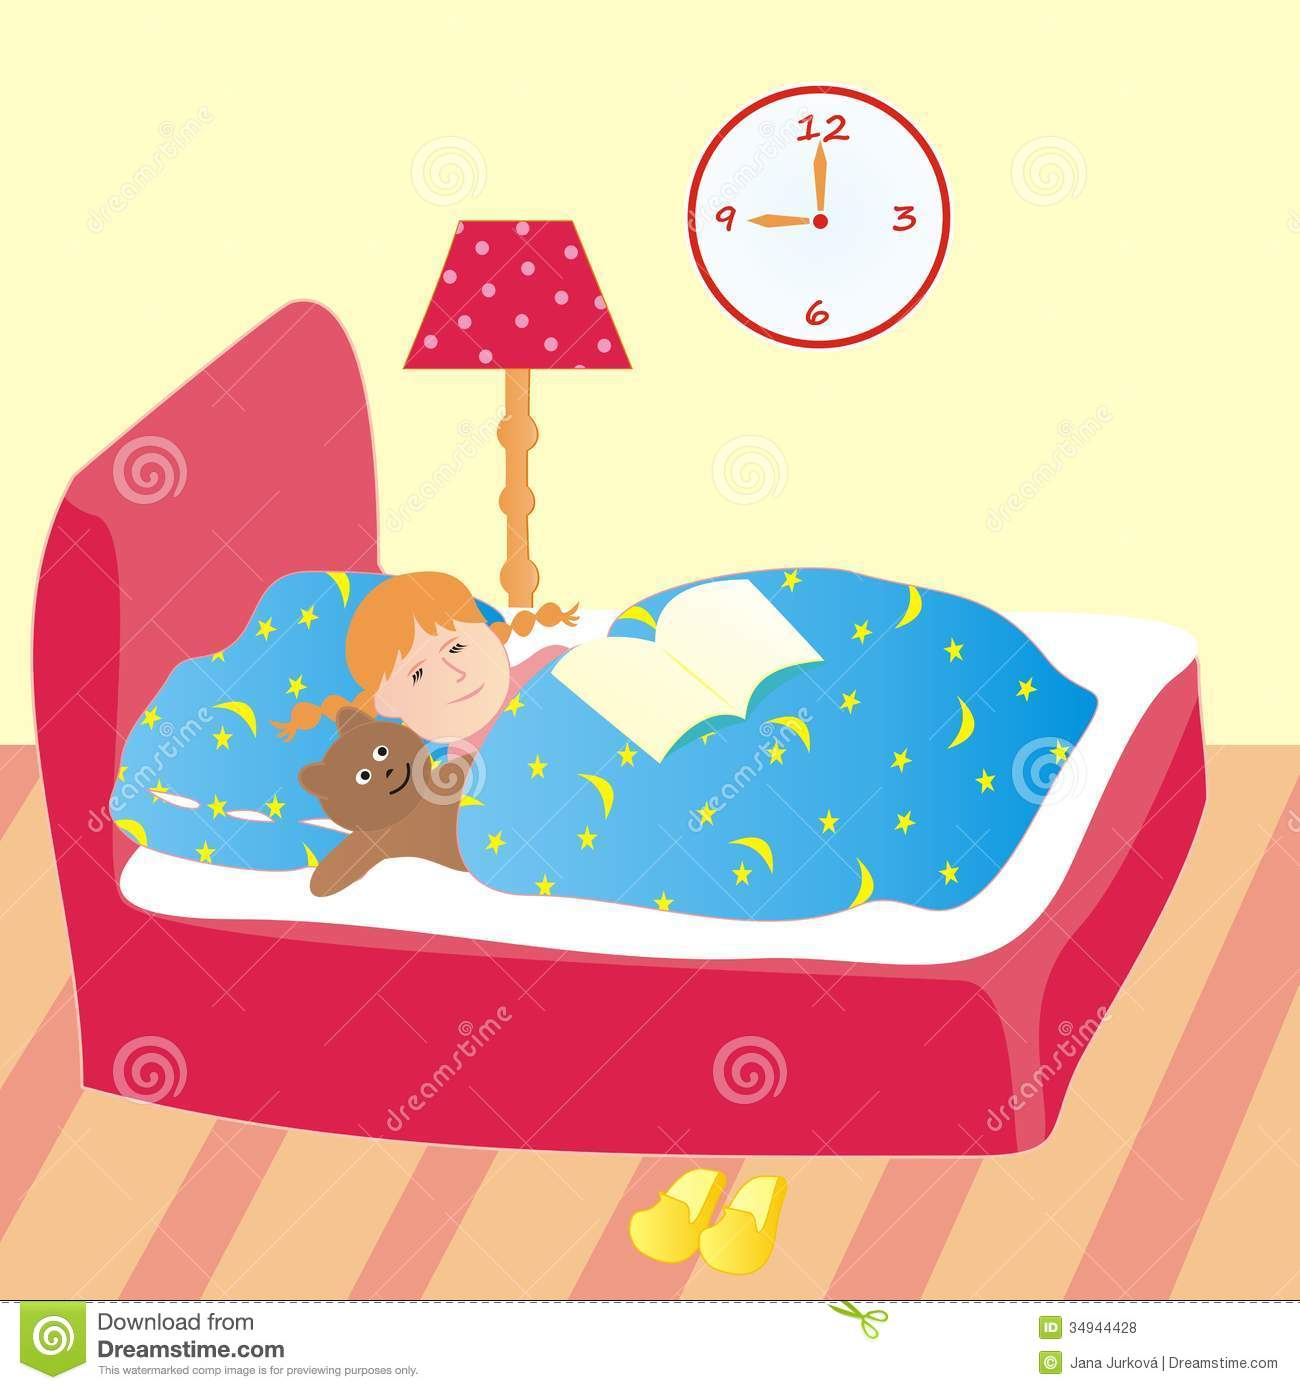 Feather beds clipground featherbed. Bed clipart illustration